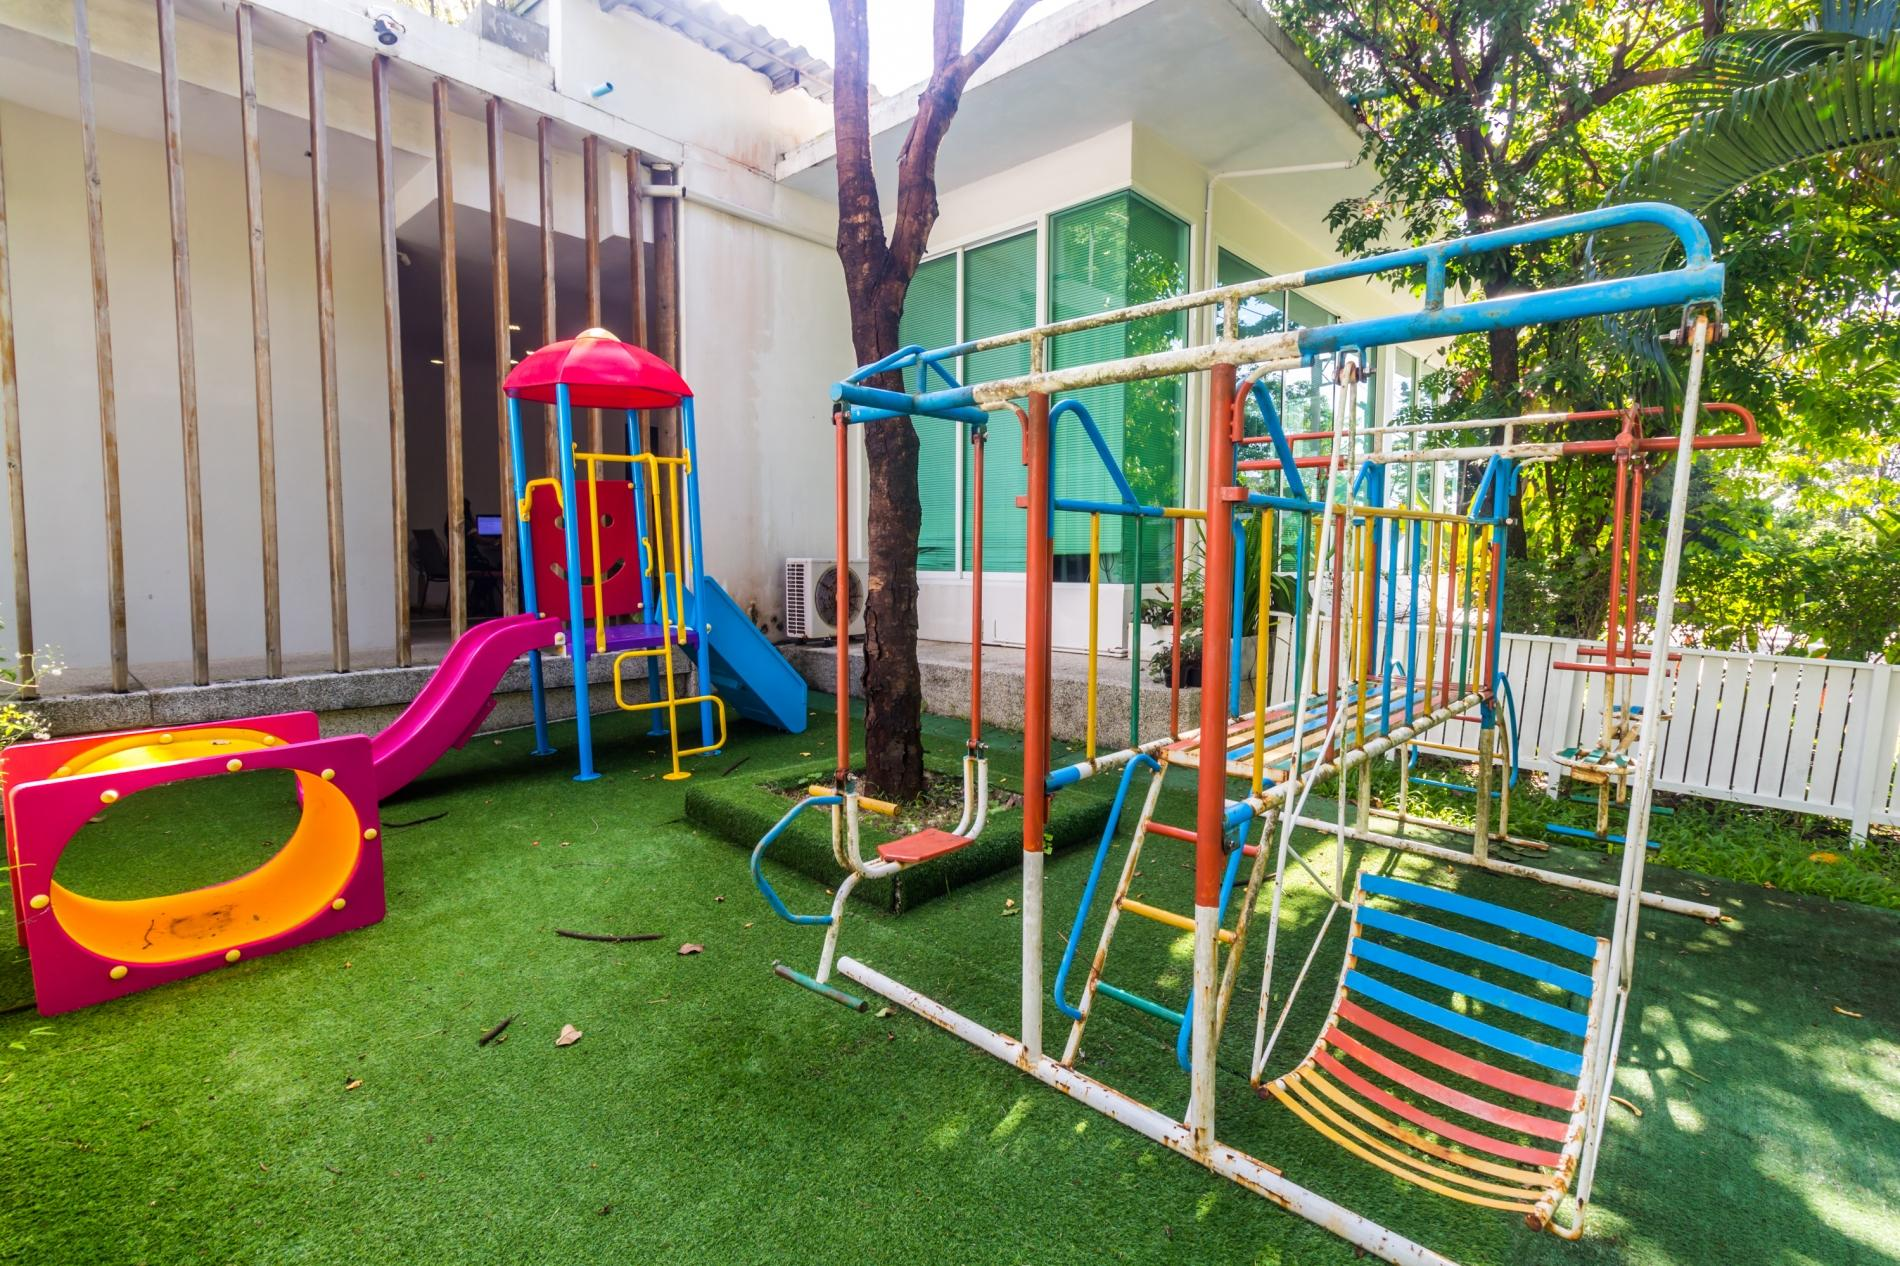 Apartment Zen Space 412 - Family holiday with pools  children area  gym and free shuttle to beach  photo 16936387